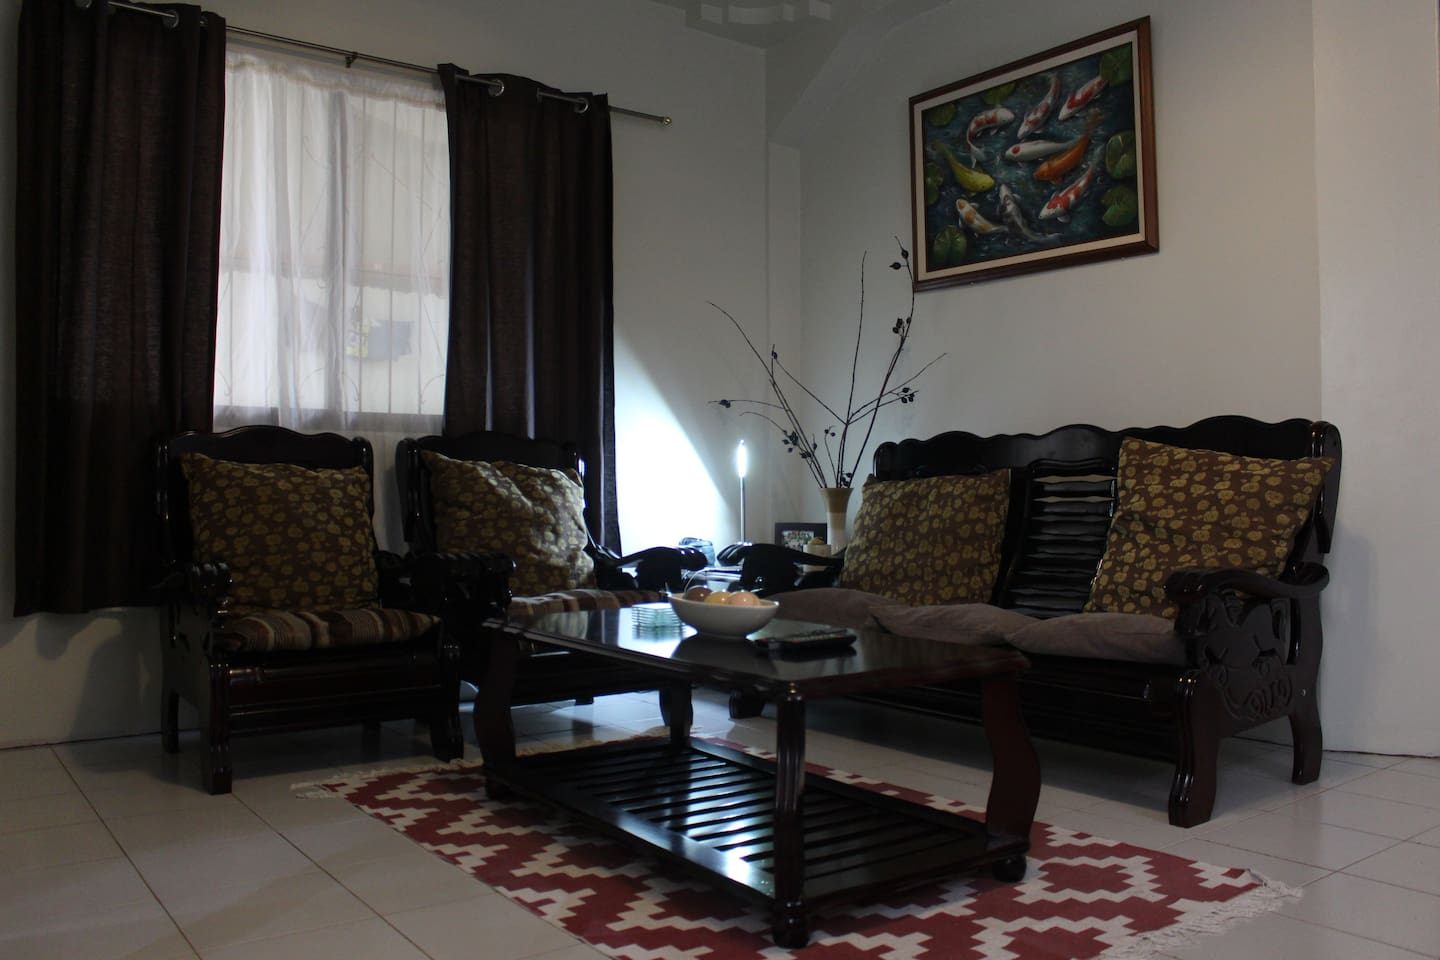 Crib for sale in davao city - Hannah S Crib In Tibungco Houses For Rent In Davao City Davao Region Philippines